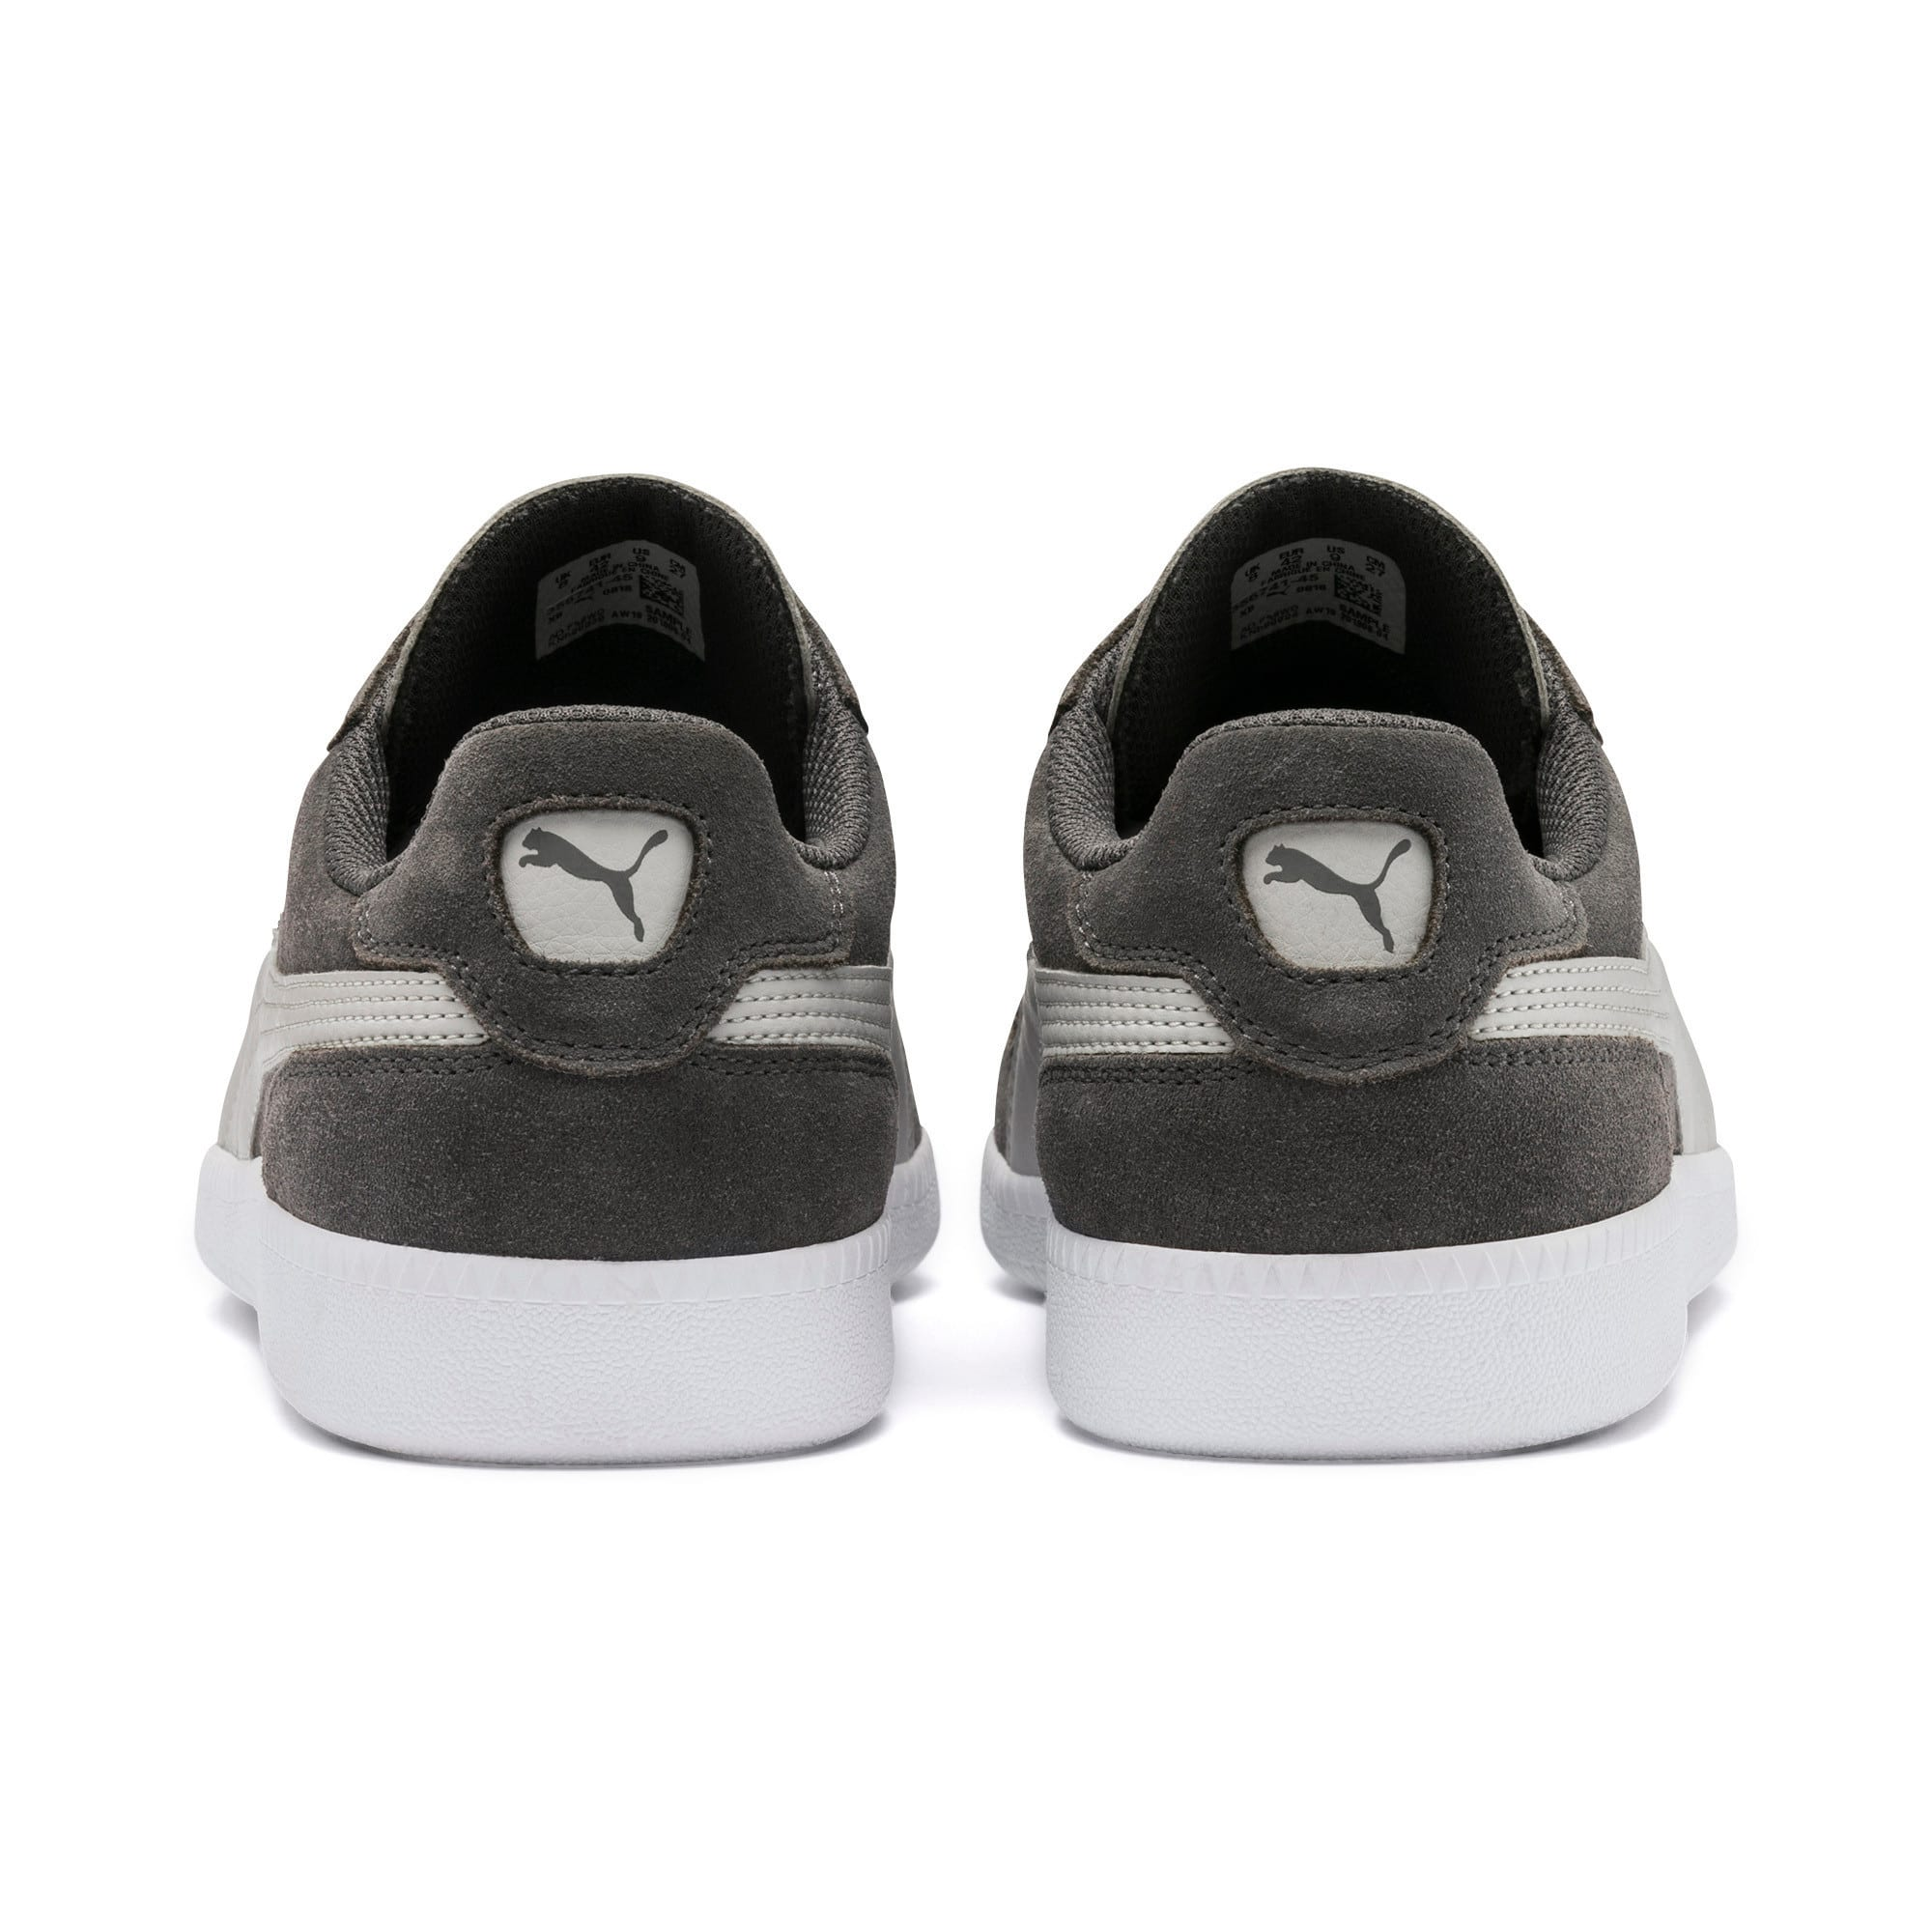 Thumbnail 5 of Icra Suede Trainers, CASTLEROCK-High Rise-White, medium-IND